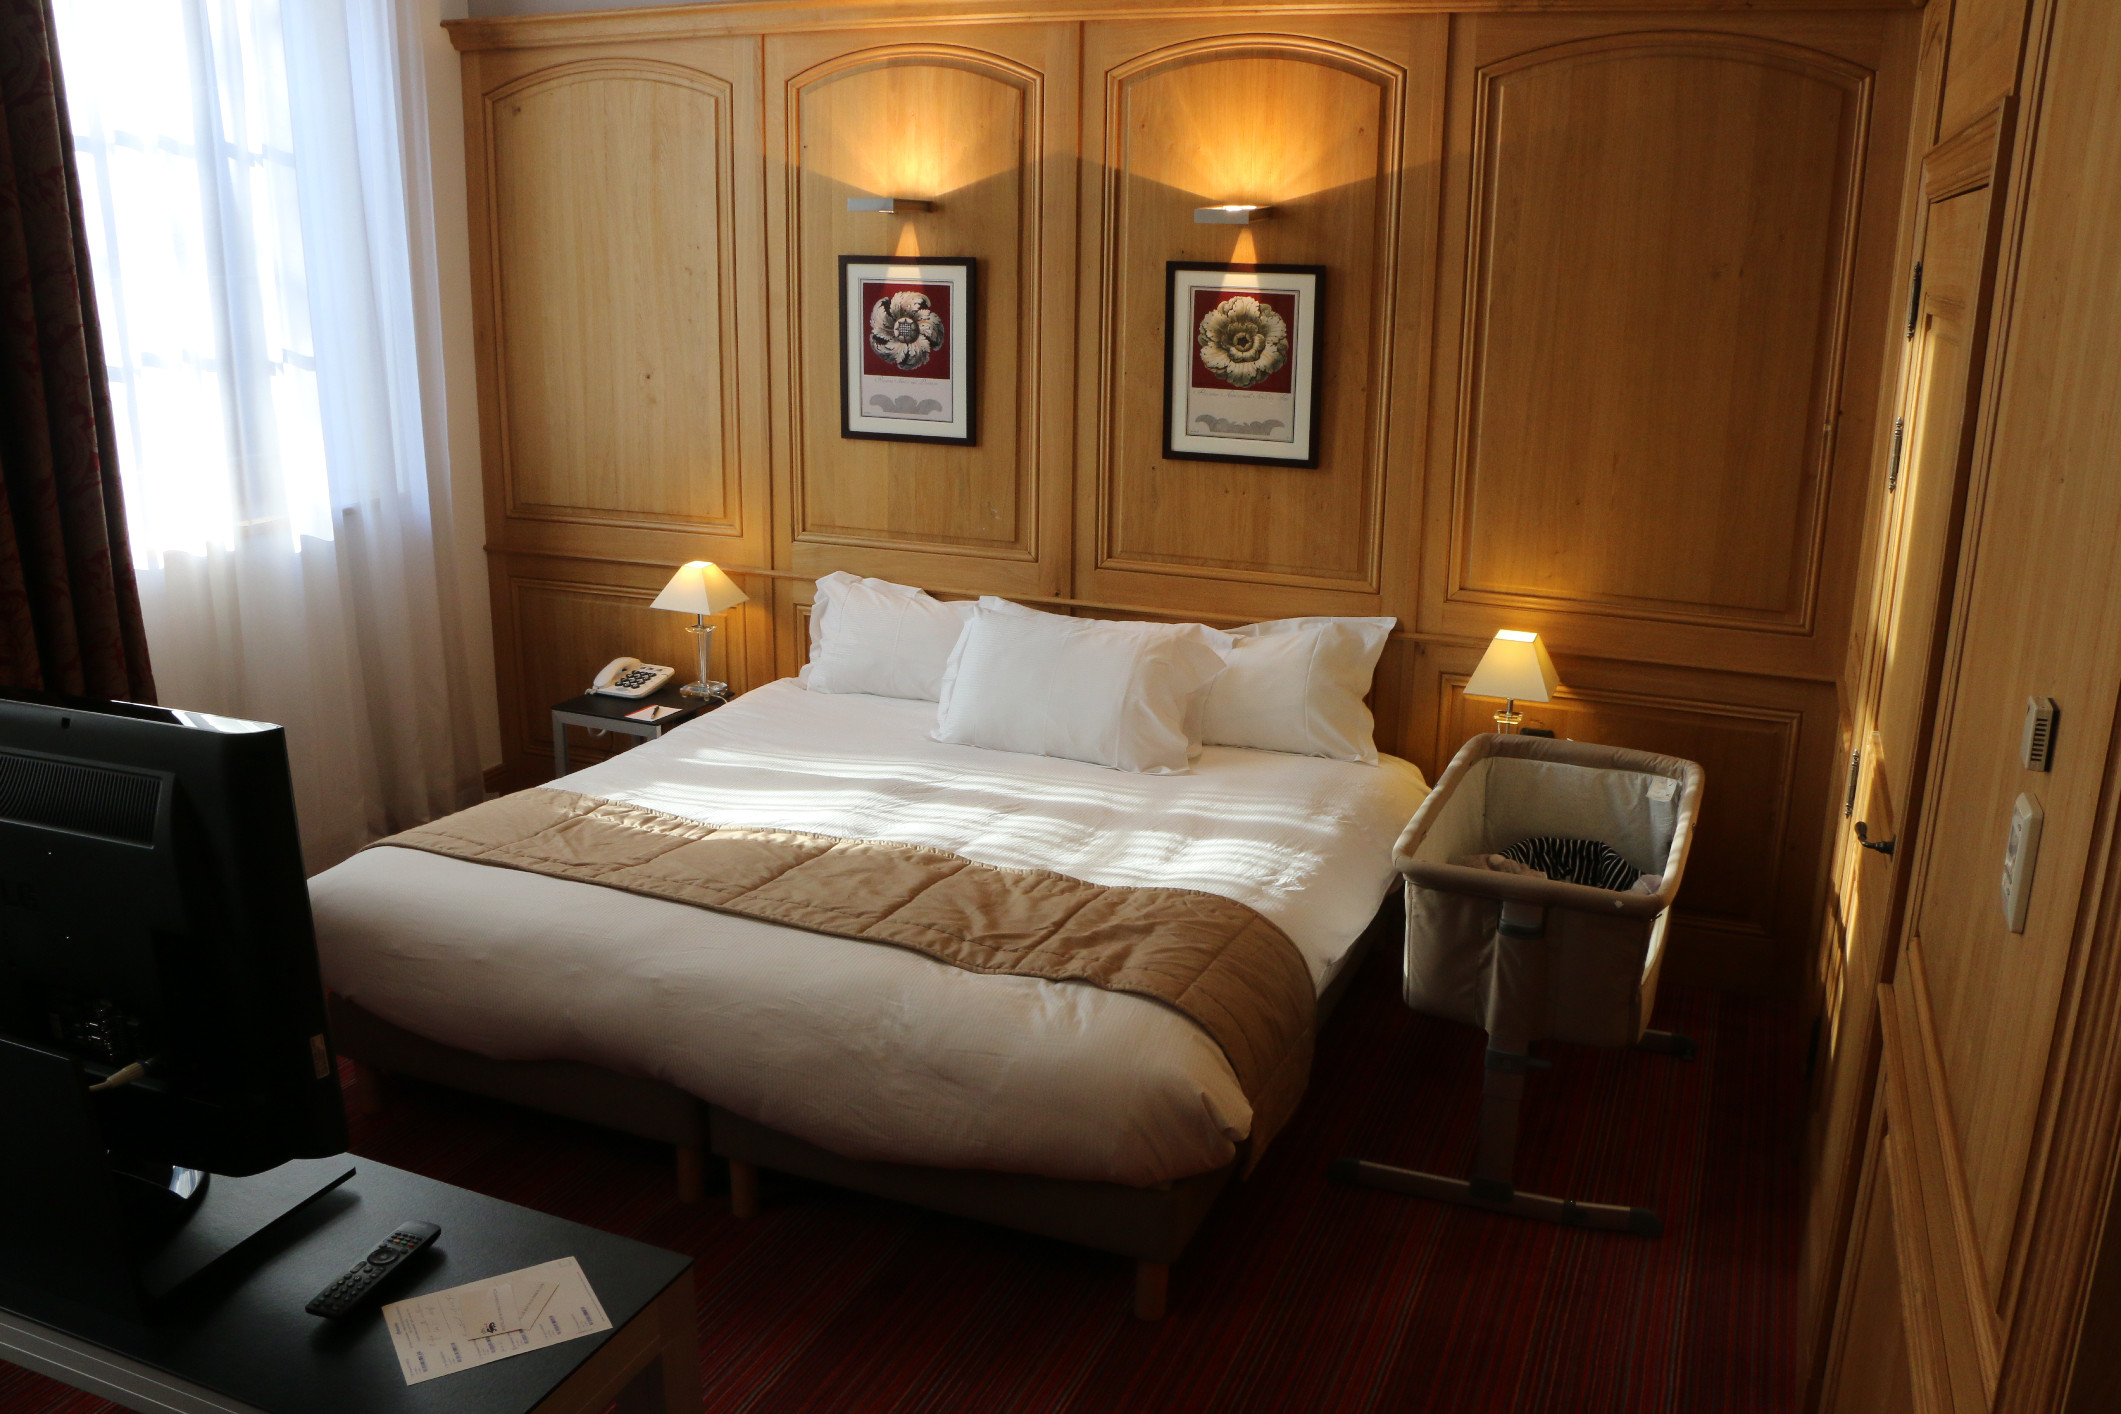 Hotel de bourgtheroulde rouen france europe for Hotels rouen